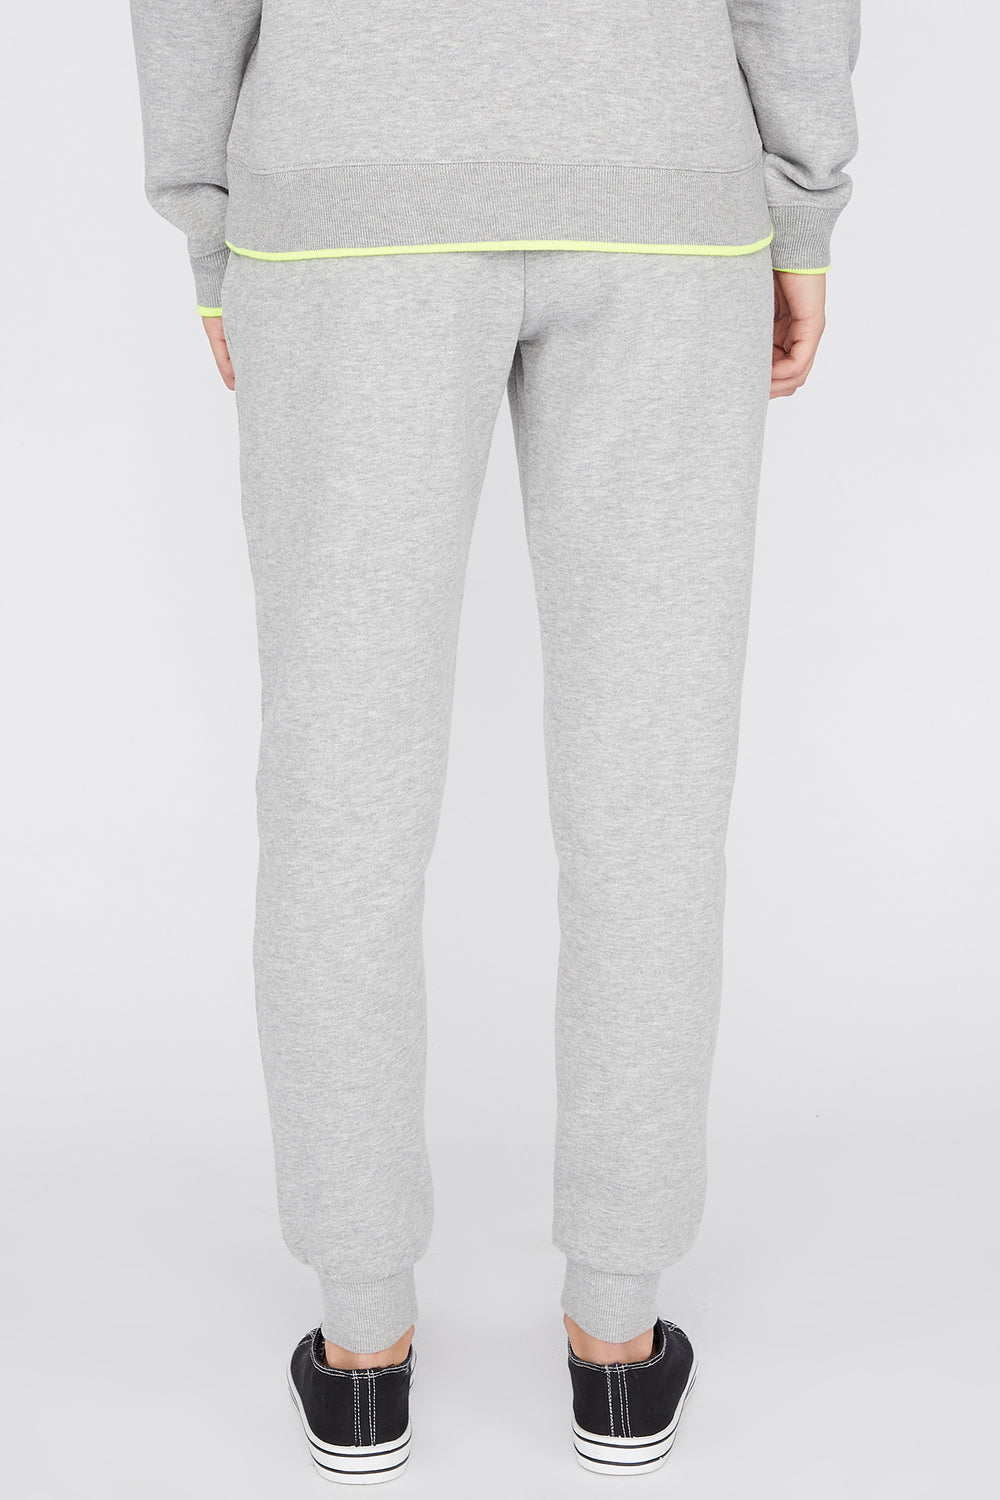 Young & Reckless Womens Solid Jogger Heather Grey